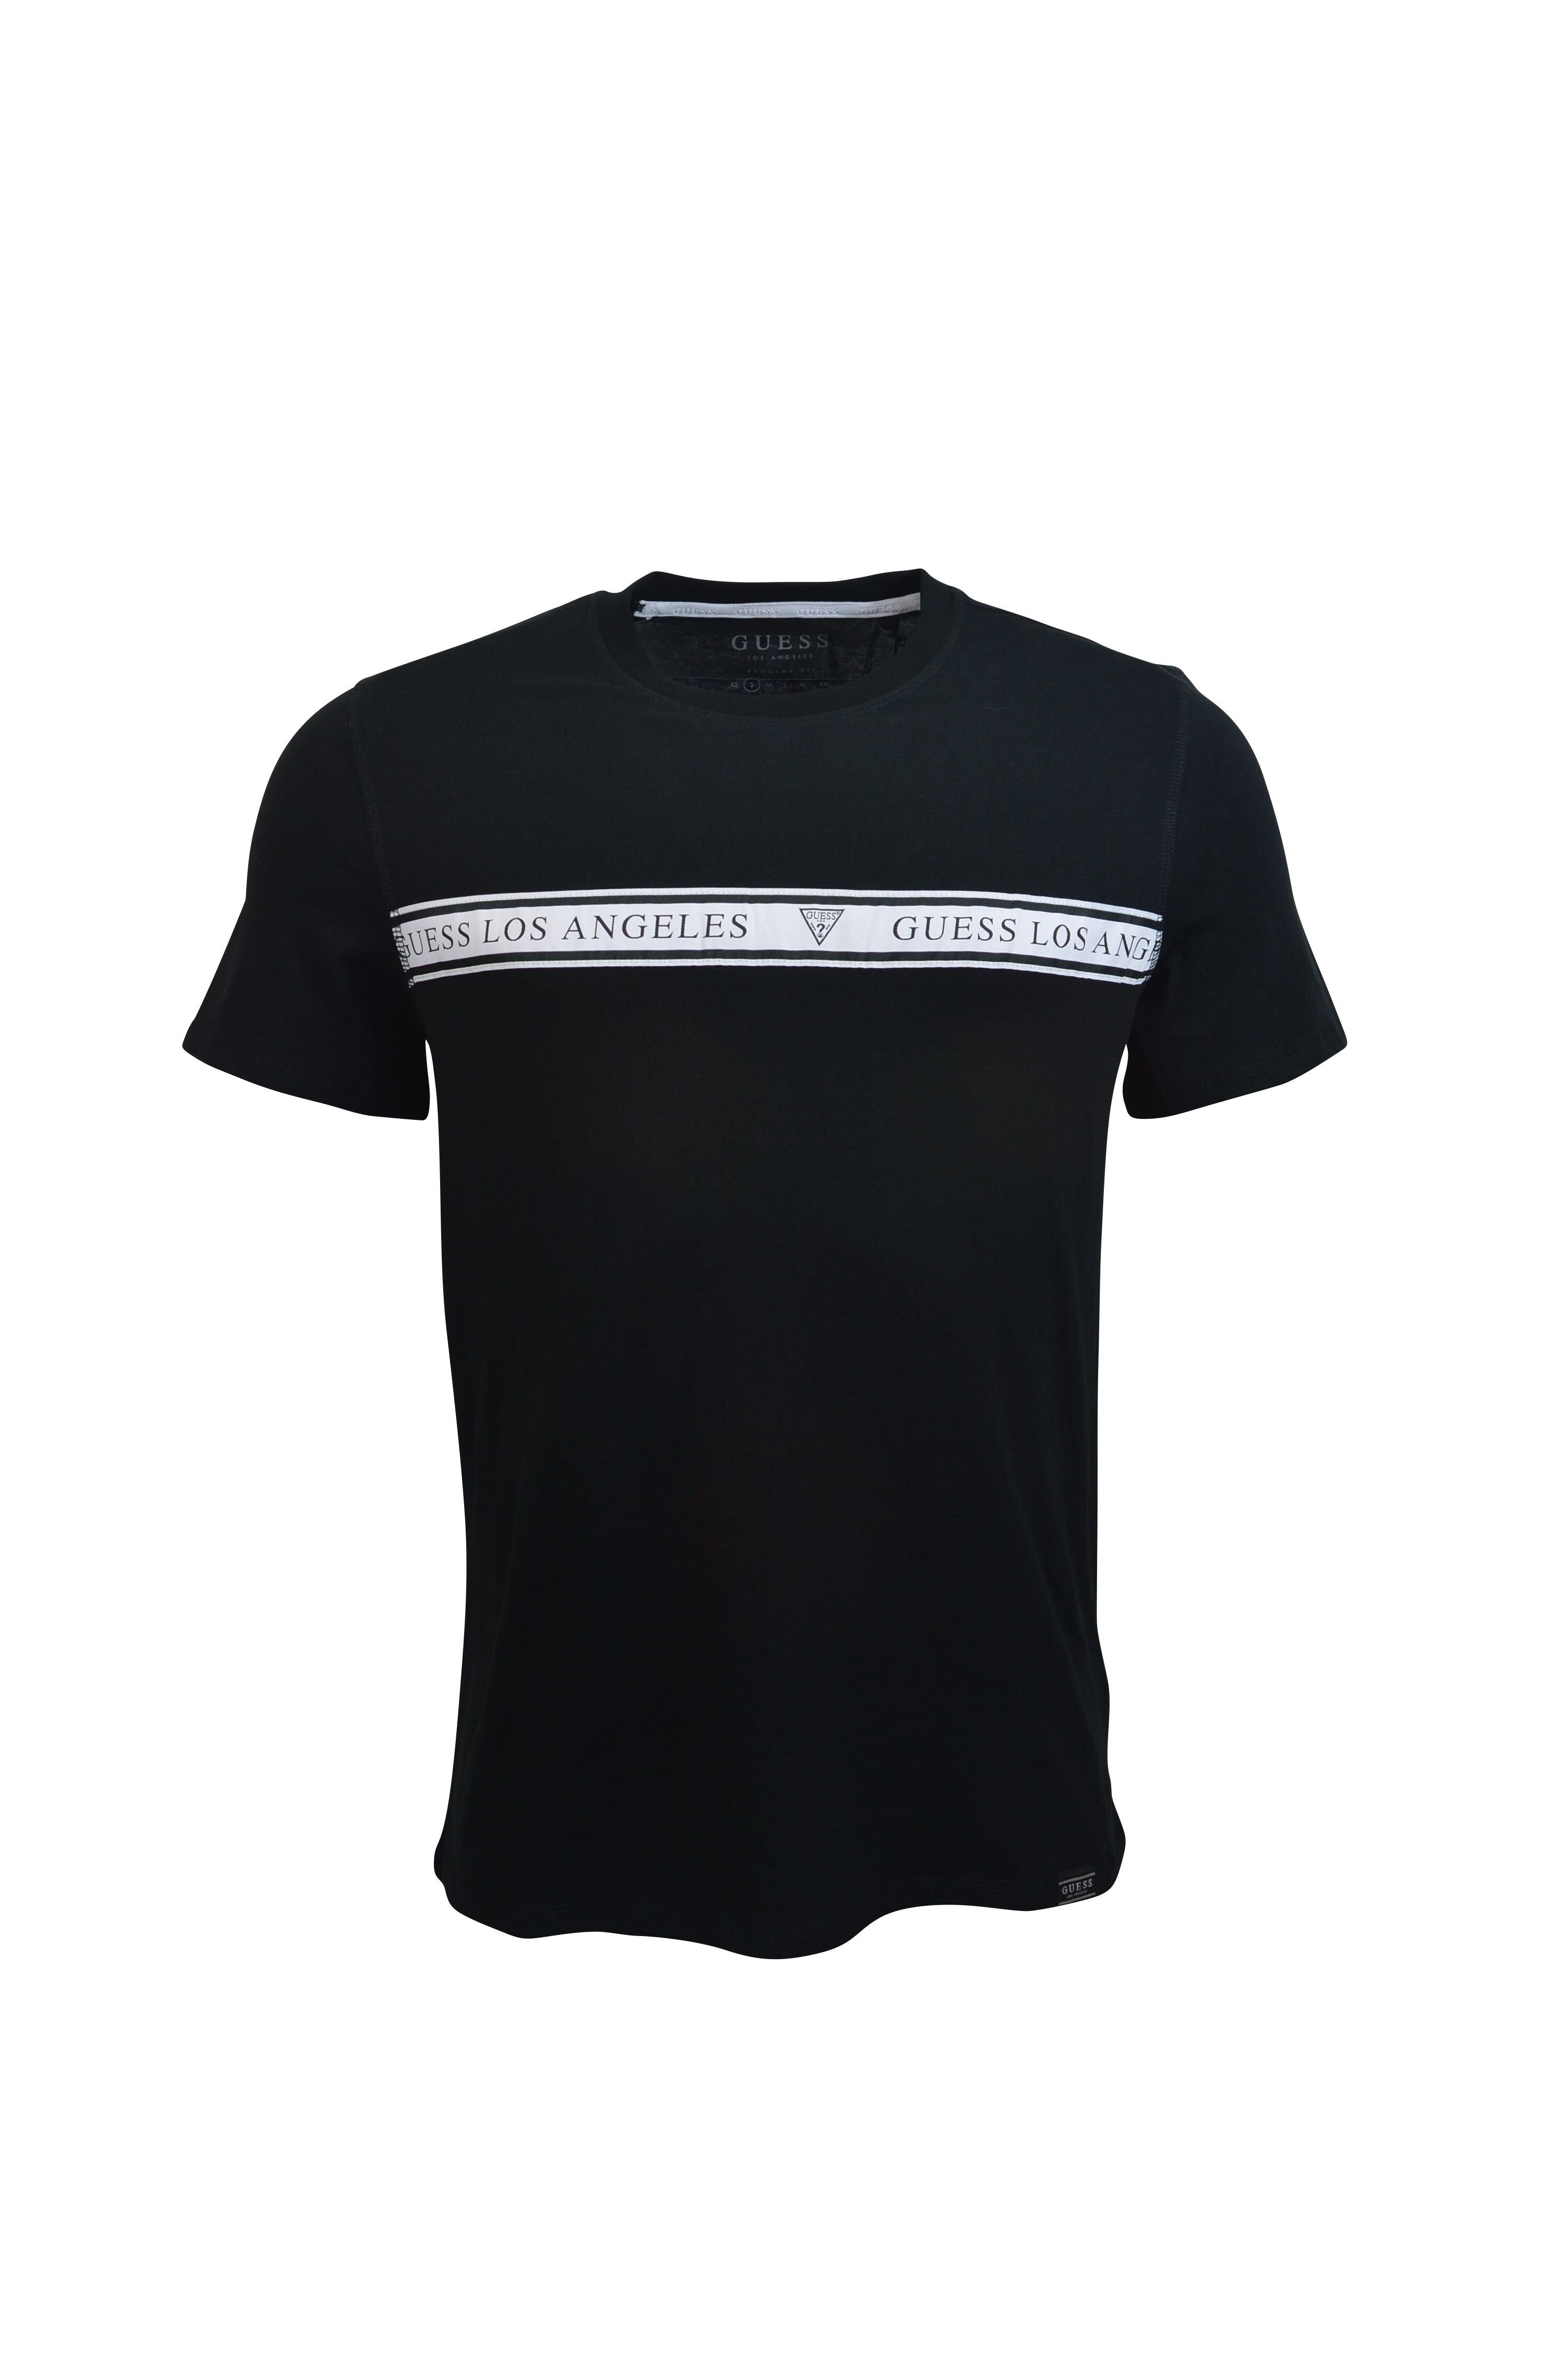 Guess - Middle Taped T-Shirt - Black